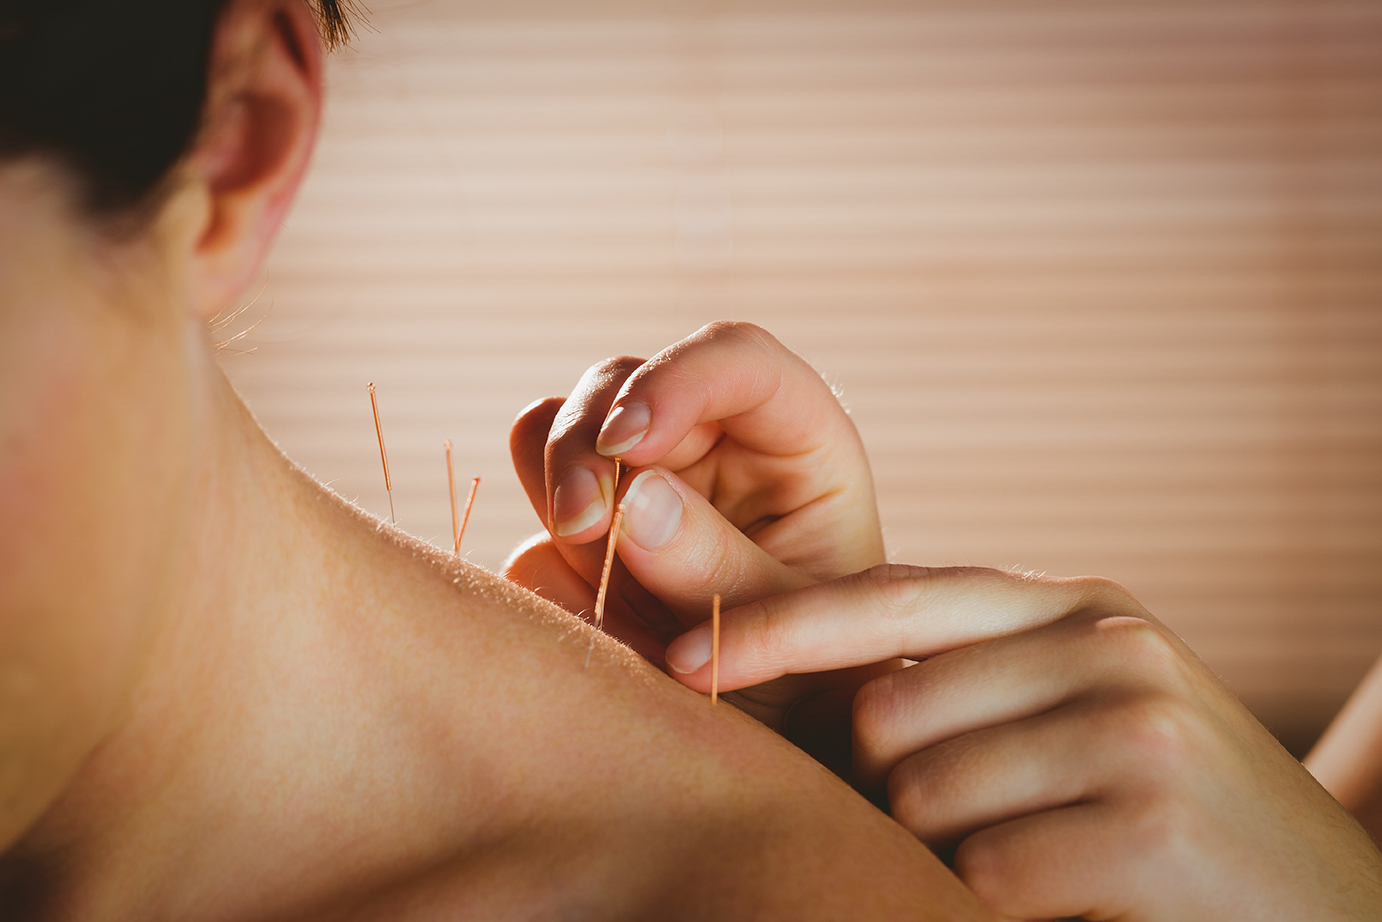 Acupuncture treatment is available at The Dawn rehab centre in Thailand